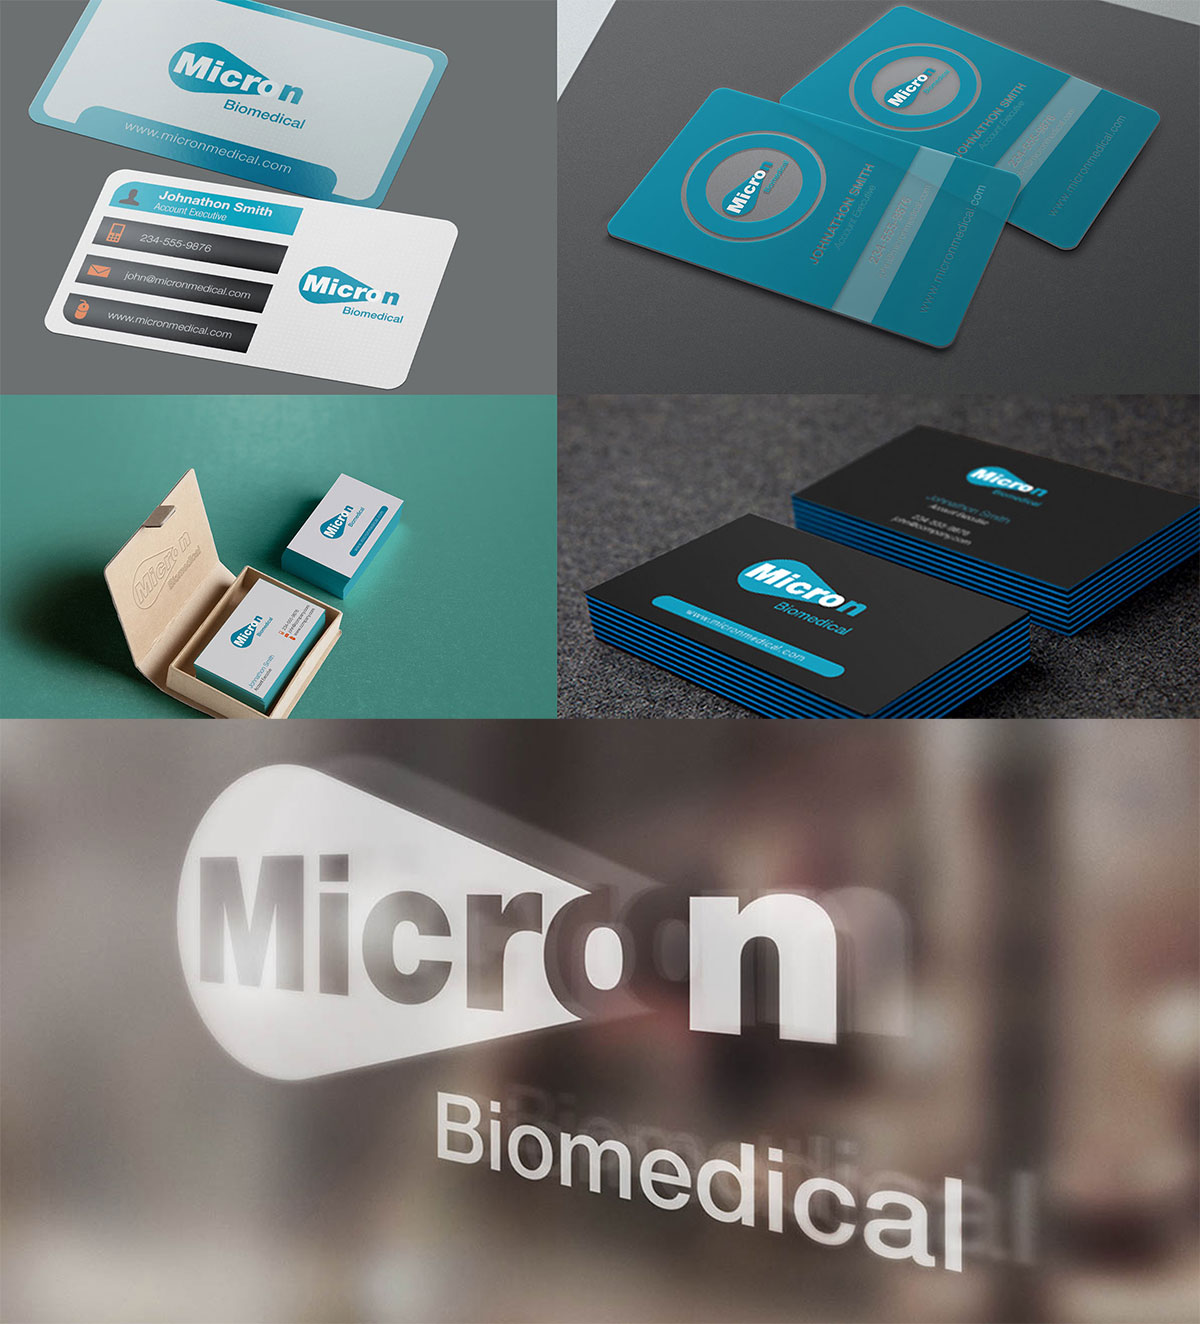 Business Card Designs and logo mockup for a company called micron biomedical